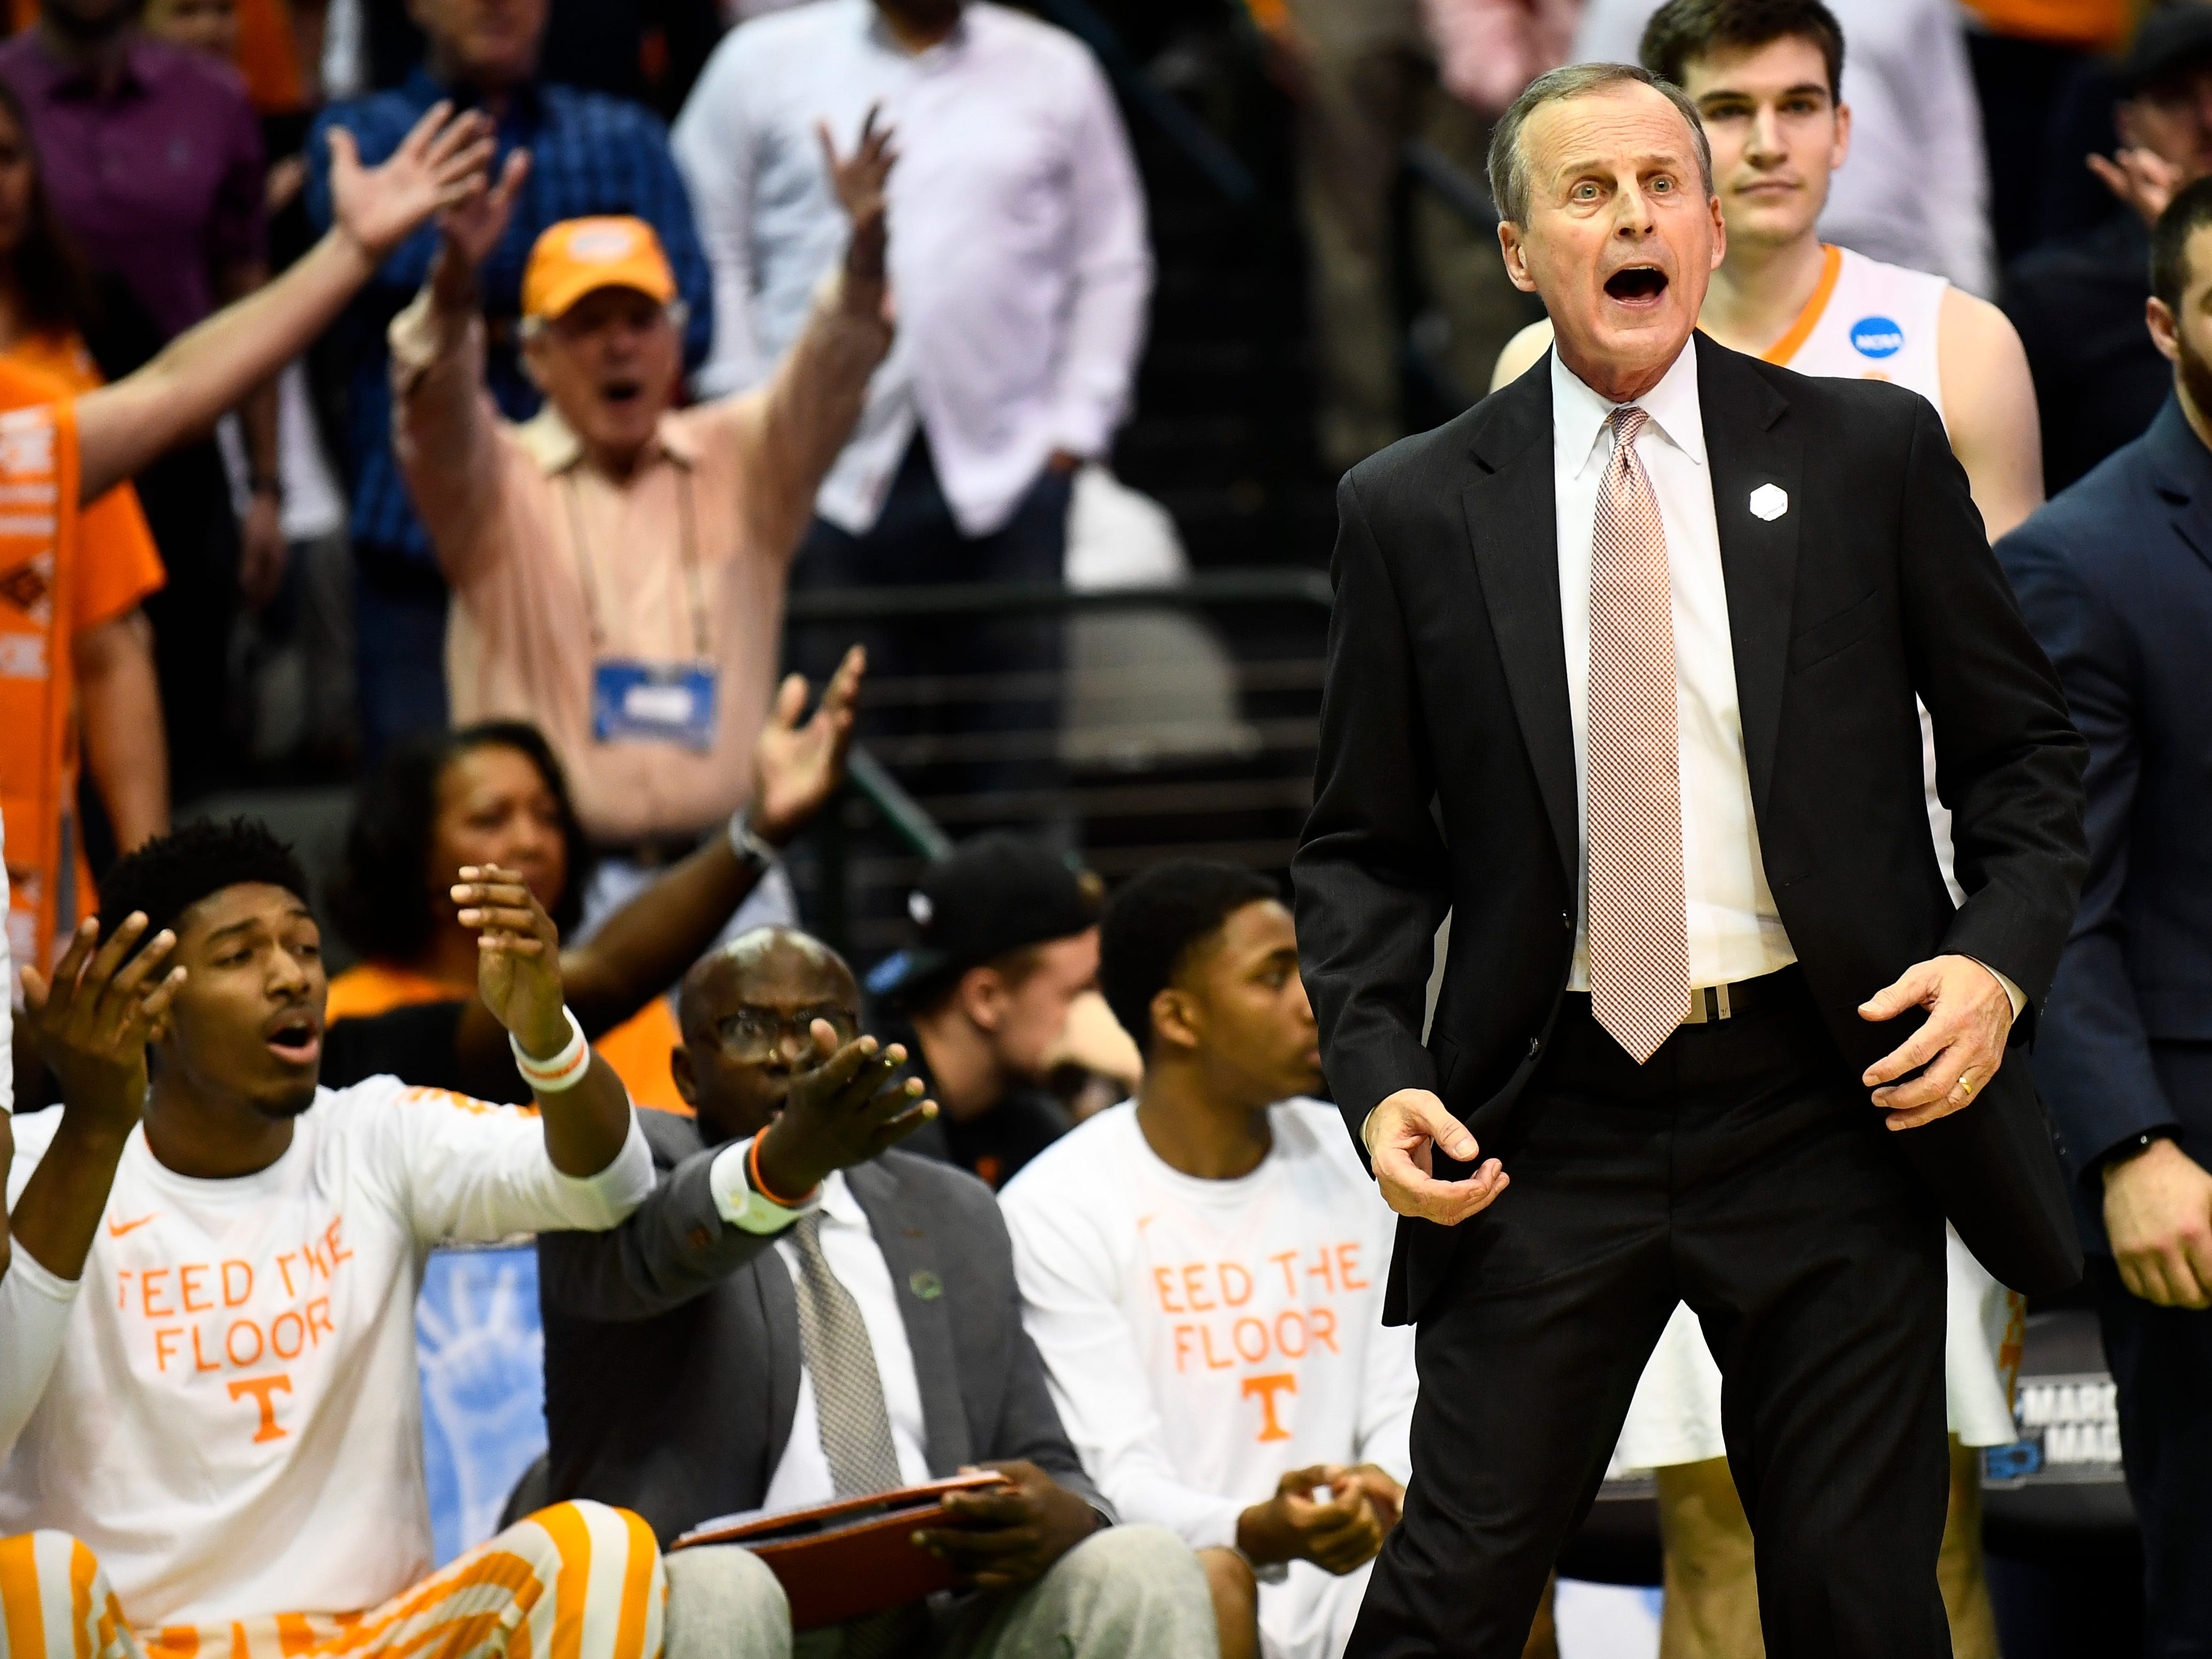 Tennessee head coach Rick Barnes shows his displeasure with a call during the NCAA Tournament second round game between Tennessee and Loyola-Chicago at American Airlines Center in Dallas, Texas, on Saturday, March 17, 2018.